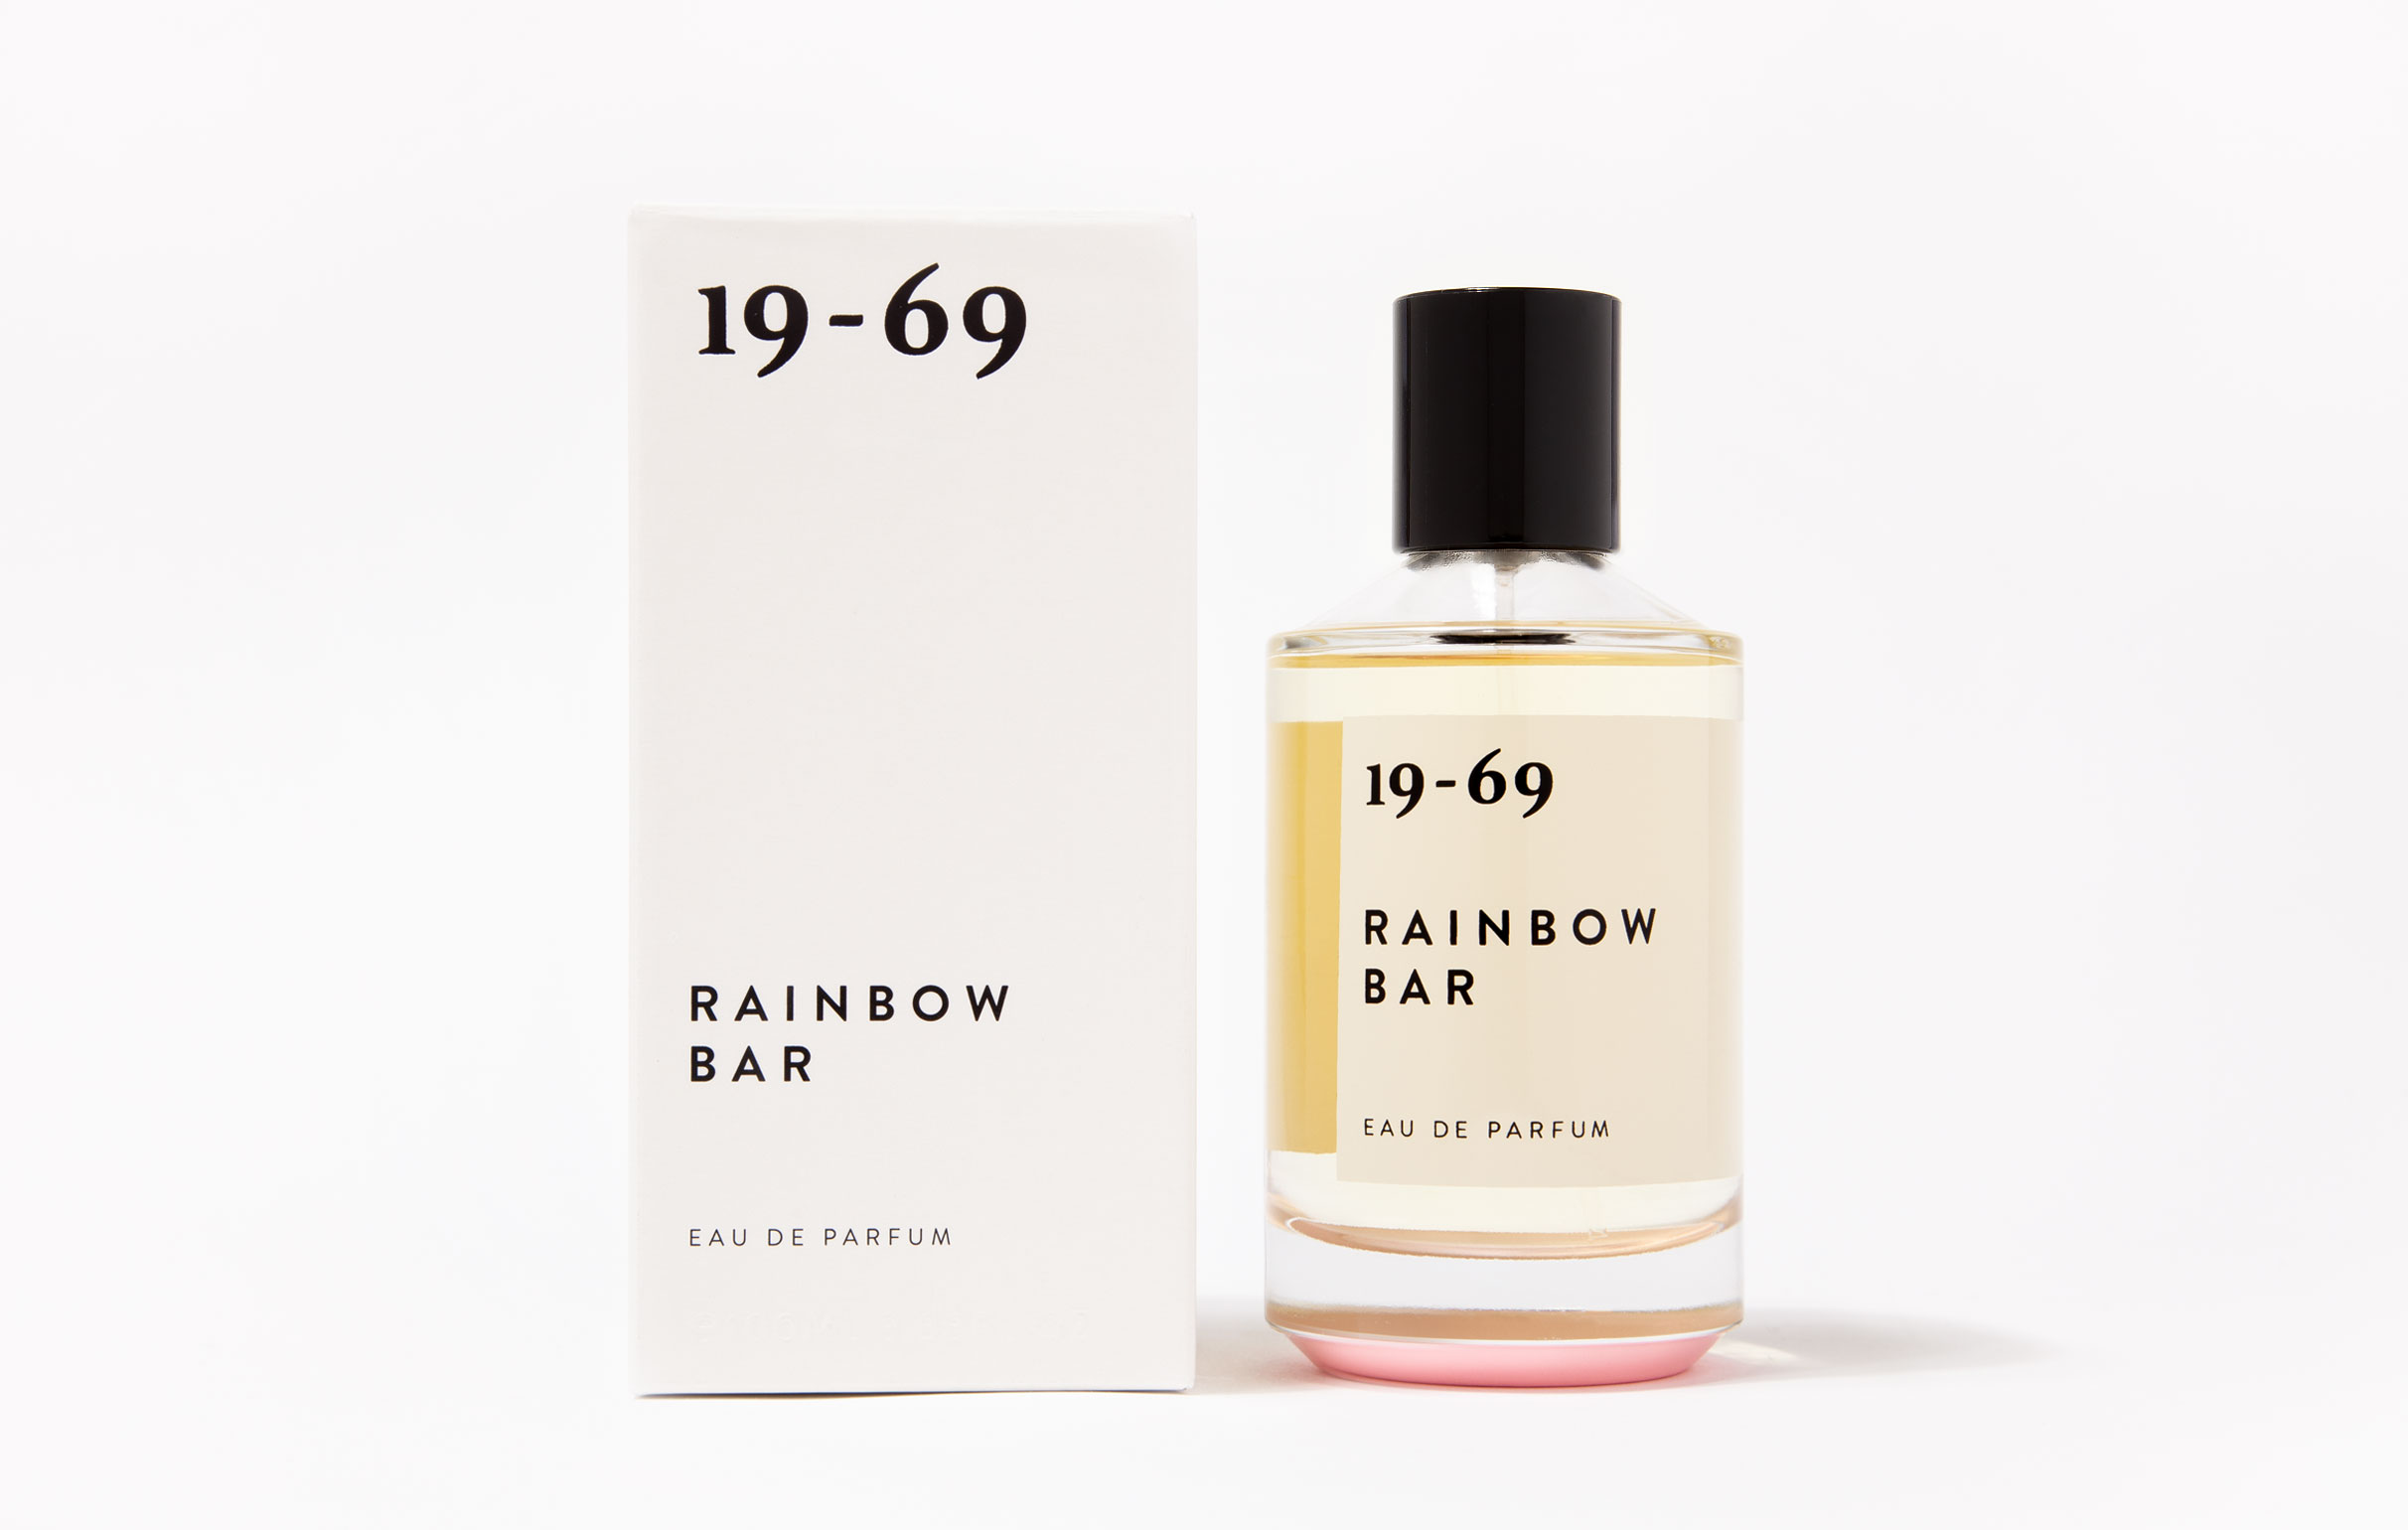 19-69 Rainbow Bar Eau de Parfum 100ml